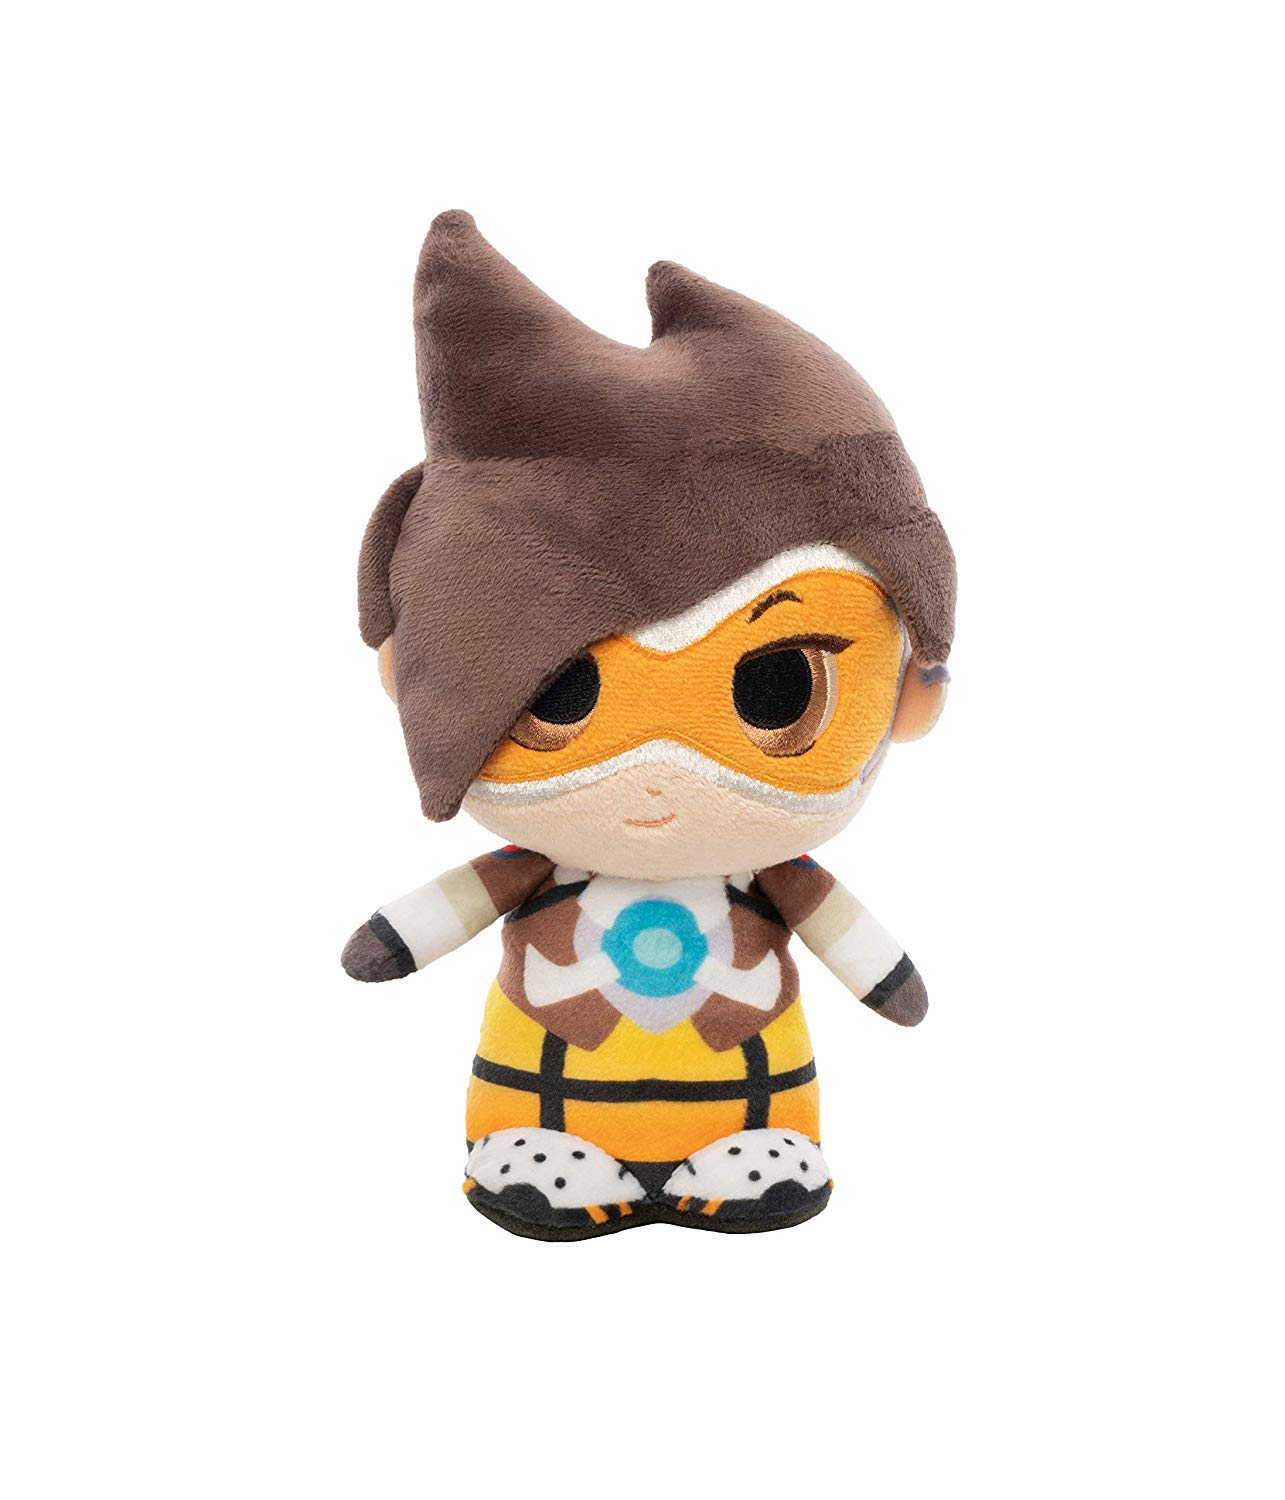 Overwatch Tracer and Roadhog Collectible Figures Set of 3 Reaper Funko Supercute Plush